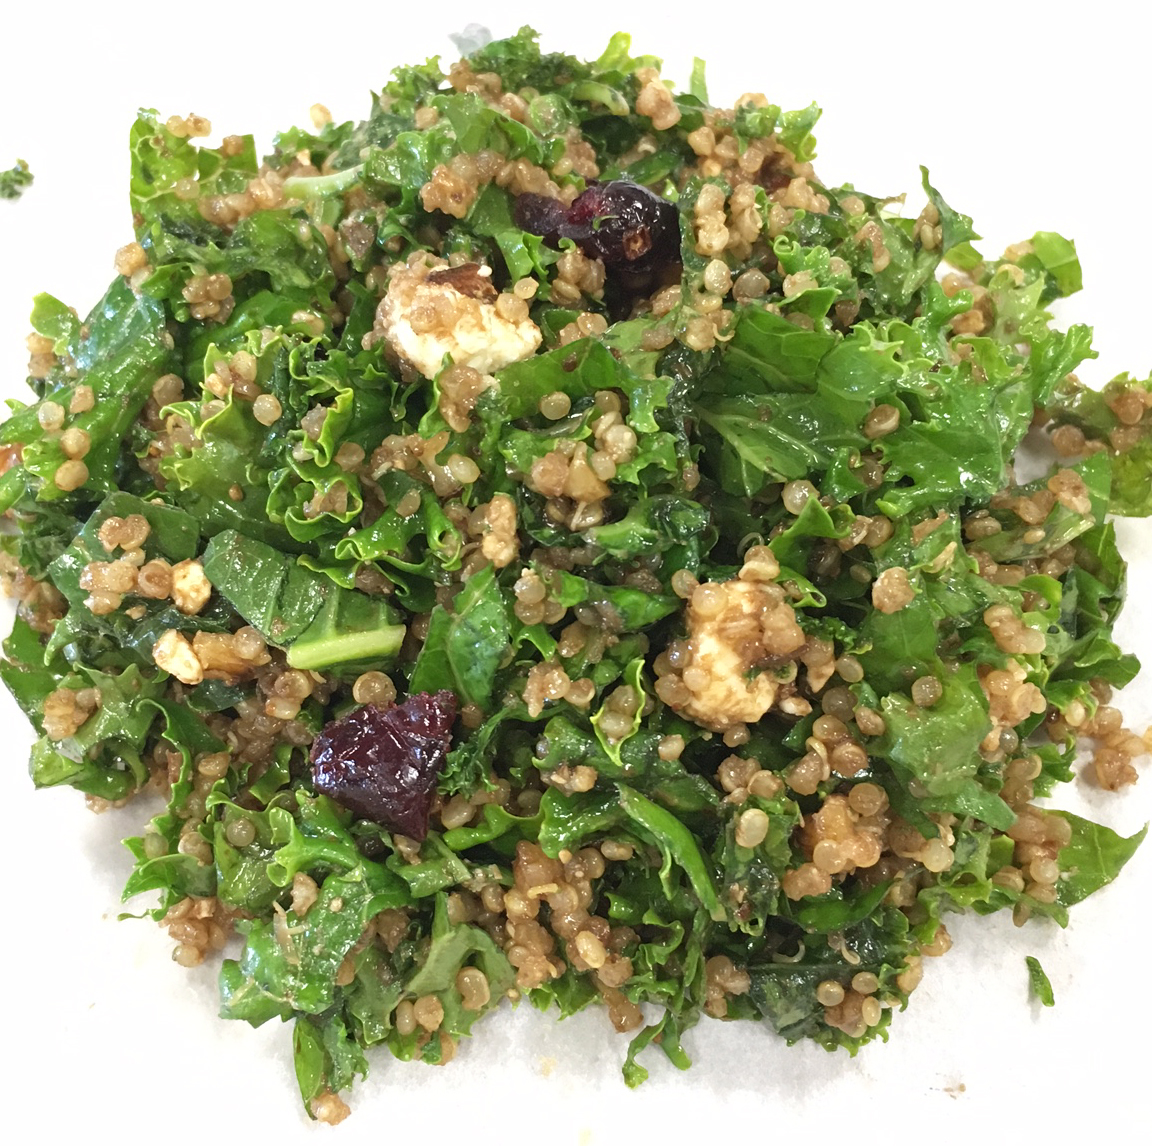 Kale Quinoa with Walnuts, Feta & Cranberries - Curly kale massaged and finely chopped along with gluten-free protein packed quinoa form the basis for the high fiber side. Rich flavors from walnuts, feta and cranberries round out the greens for a satisfying result.Dressing: enfuso fig balsamic vinegar, enfuso lemon olive oilCalories per serving: 230Price/lb: $10.00